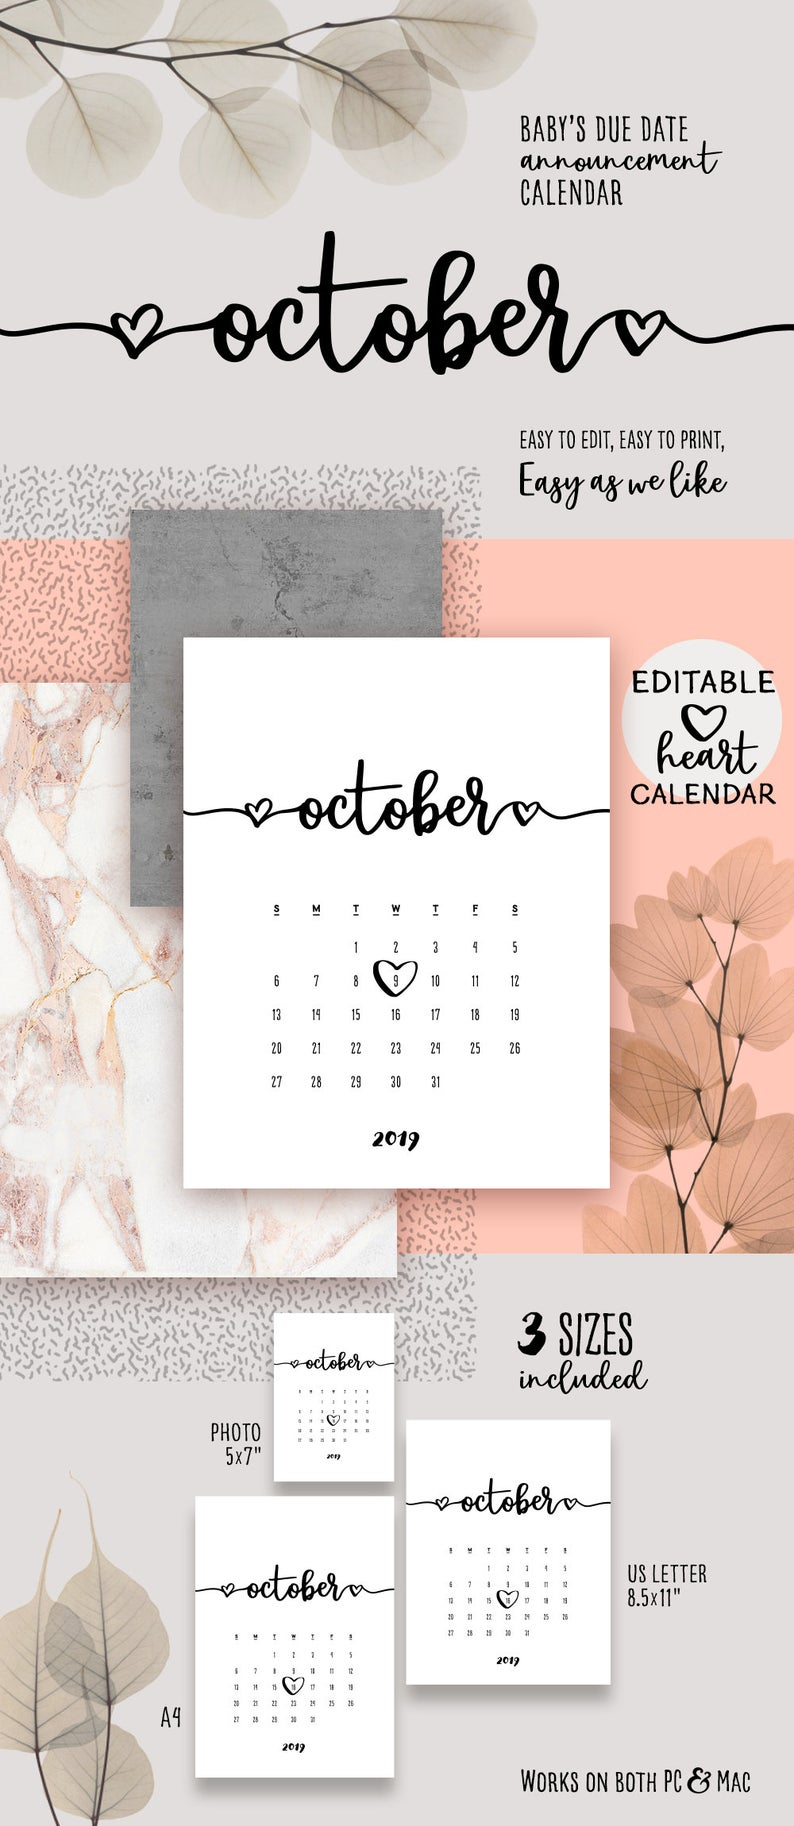 October 2019 Printable Pregnancy Calendar Template Lovely Baby Due Date  Announcement Pregnancy Calendar Pdf Baby Announce Editable Calendar pertaining to Printable Pregnancy Calendar Week By Week